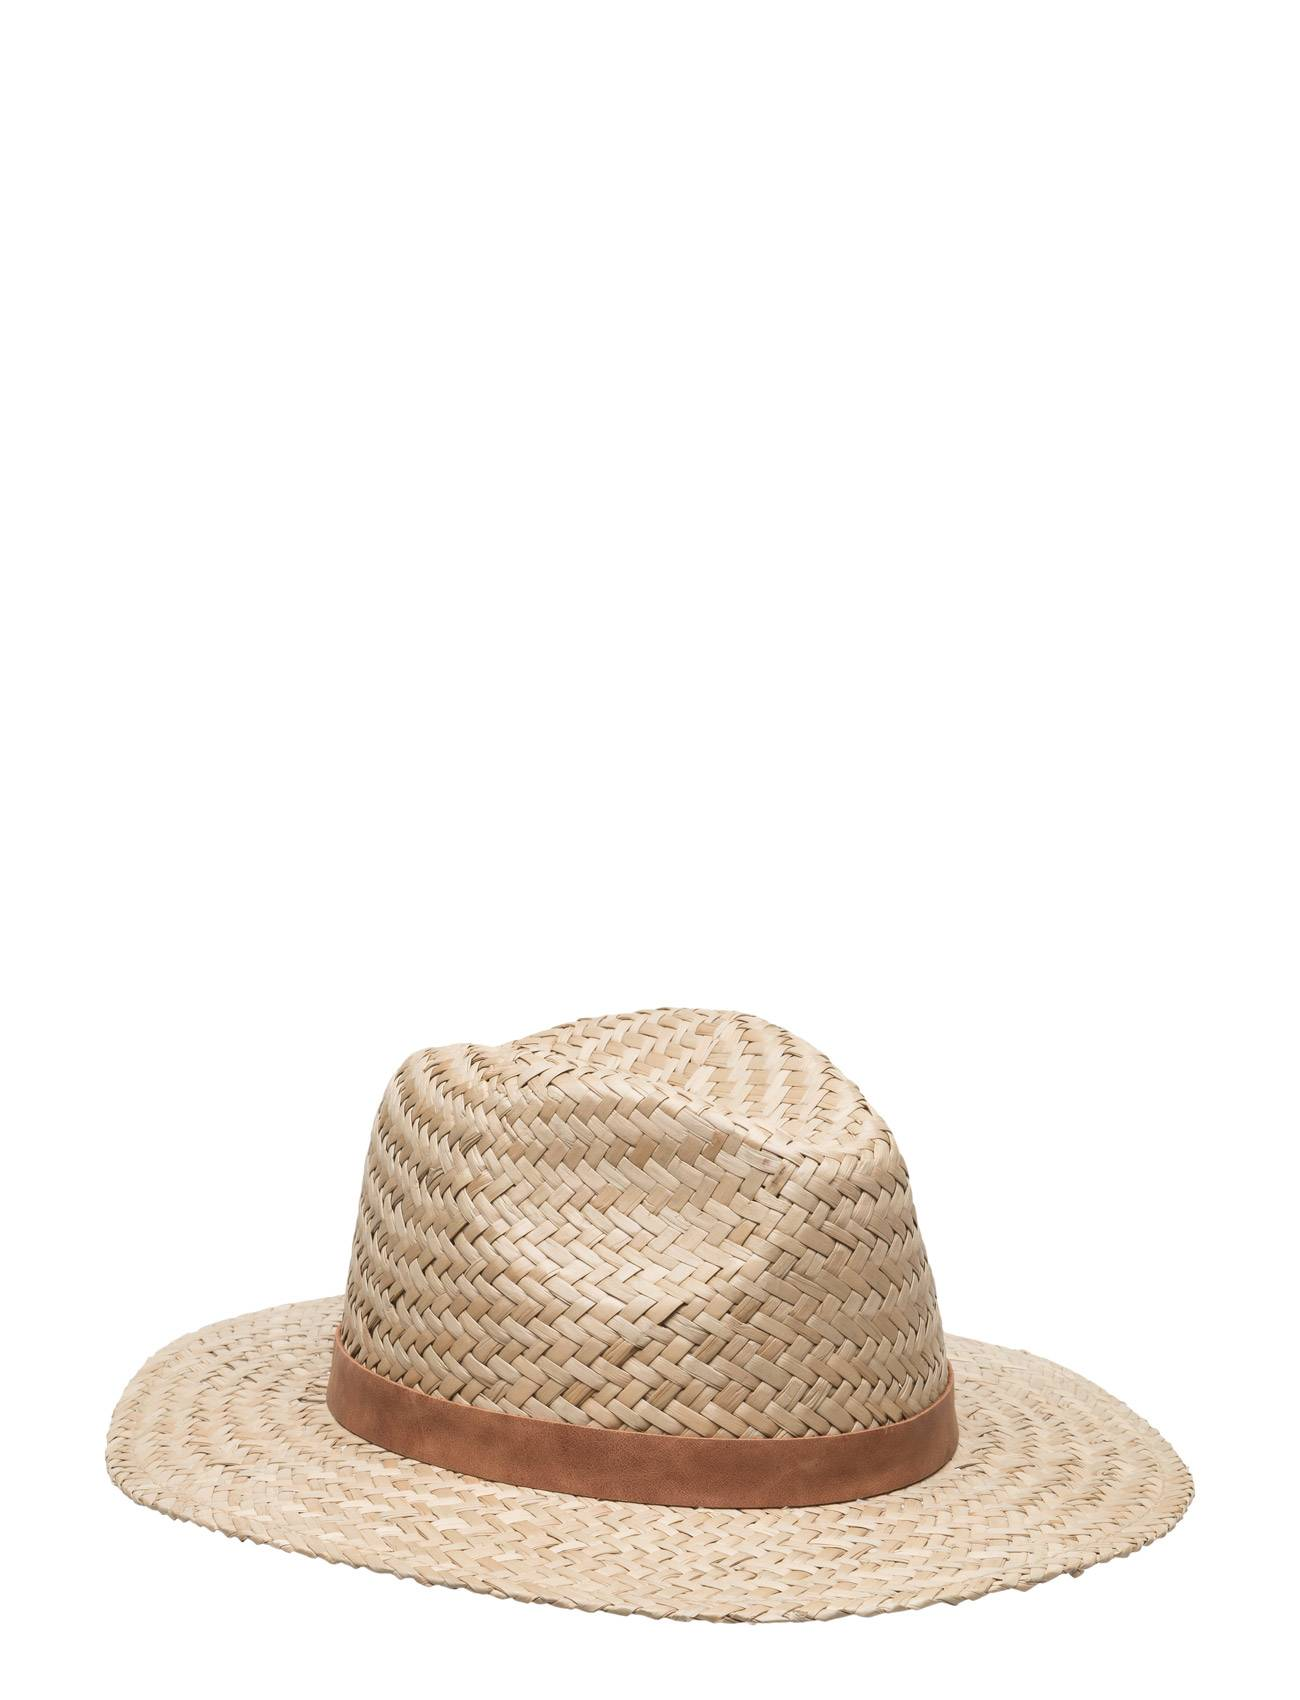 Lexington Company Panama Hat